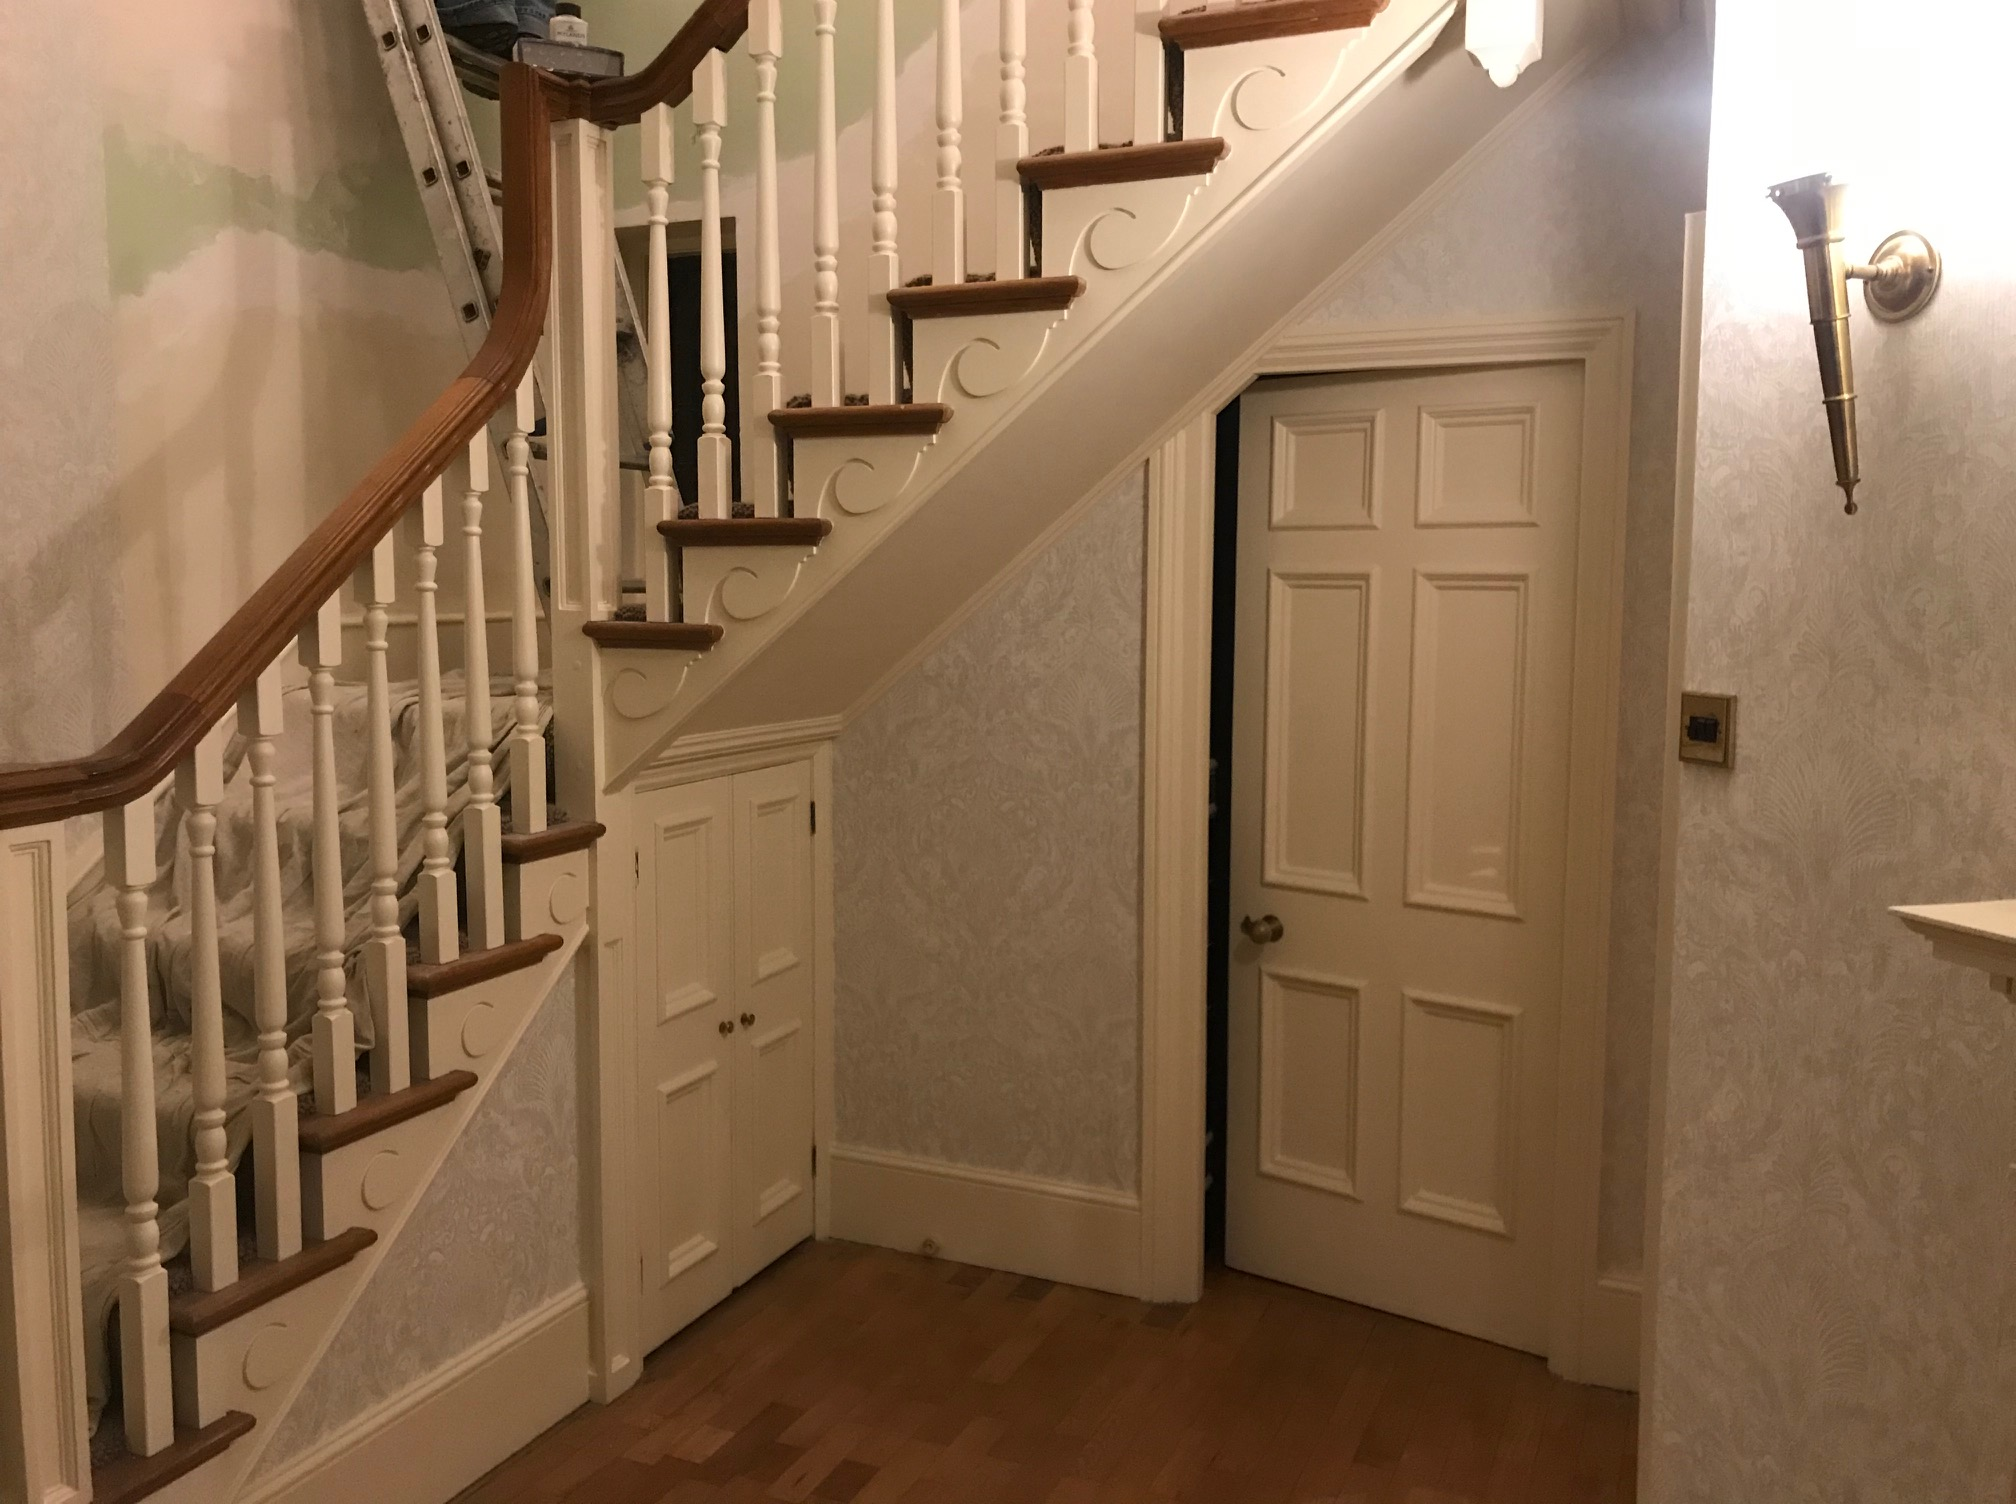 door under the stairs